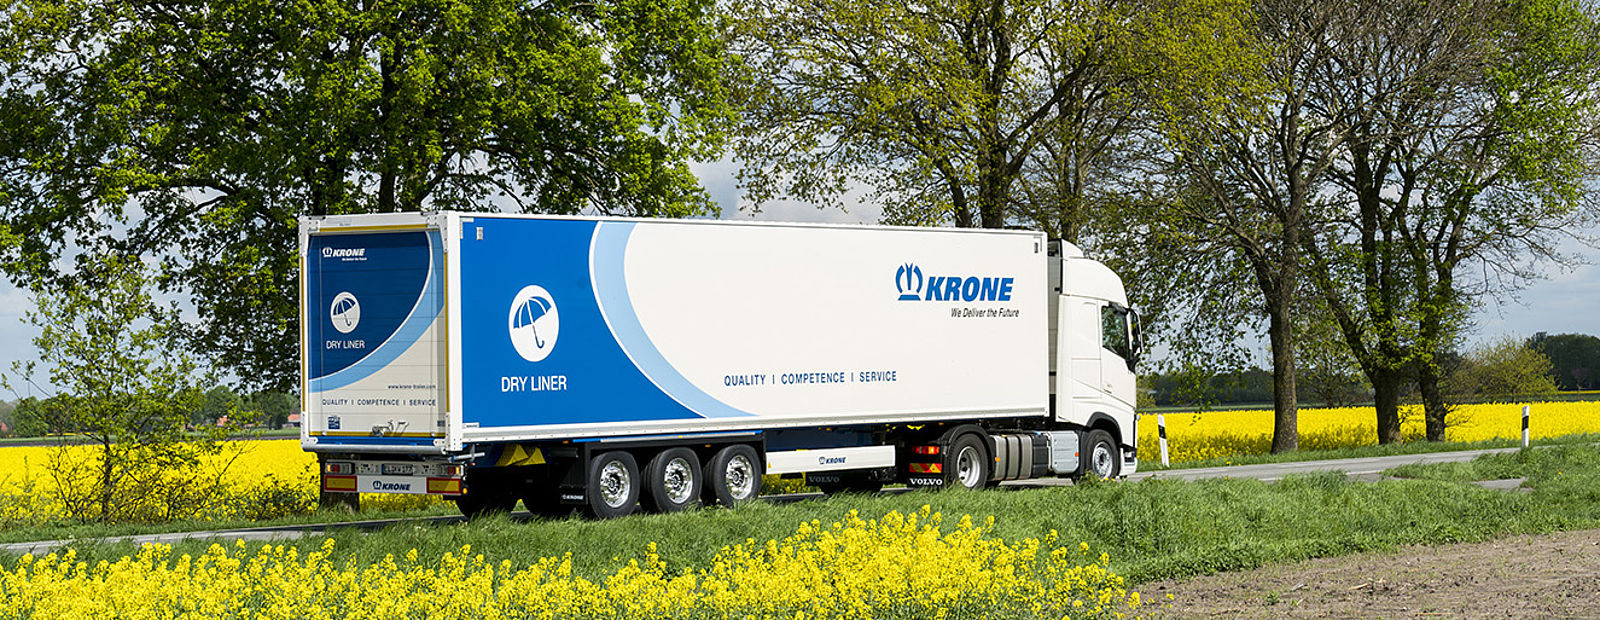 The new generation of Krone Dry Liners